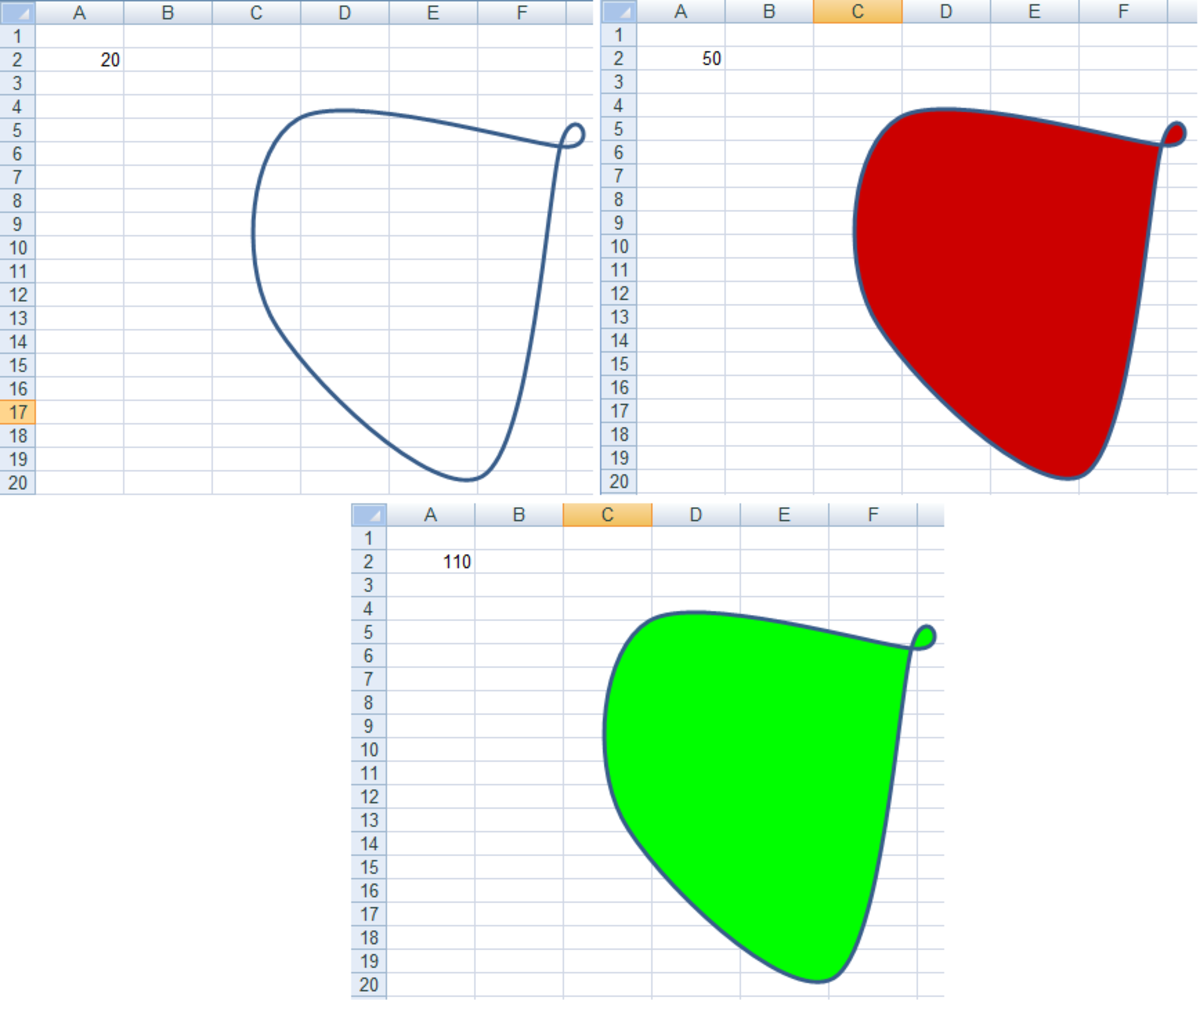 Illustration of Visual Basic code colouring the shape based on the contents of cell A2 in Excel 2007 and Excel 2010.